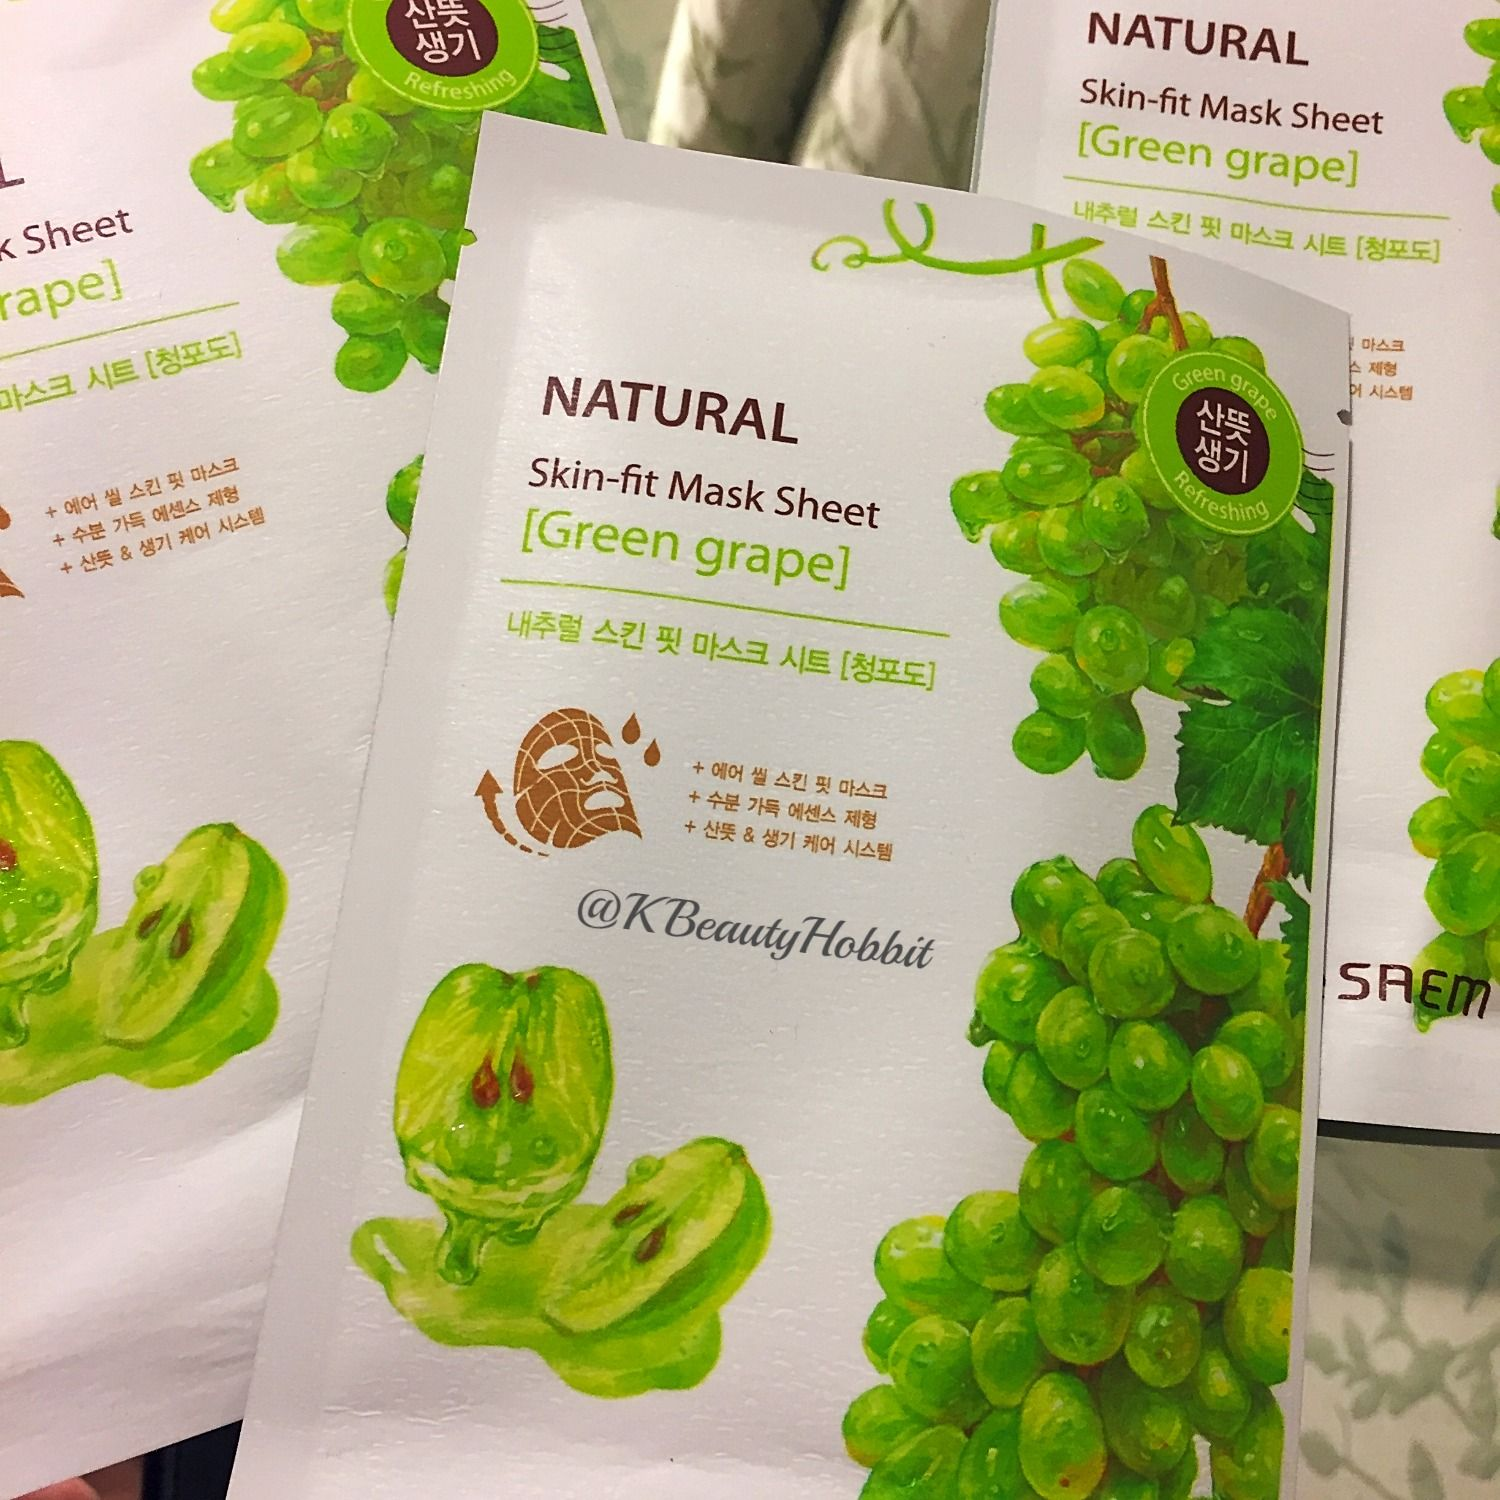 The Saem Natural Skin Fit Mask Sheet Green Grape Review Green Grapes Natural Skin Grapes